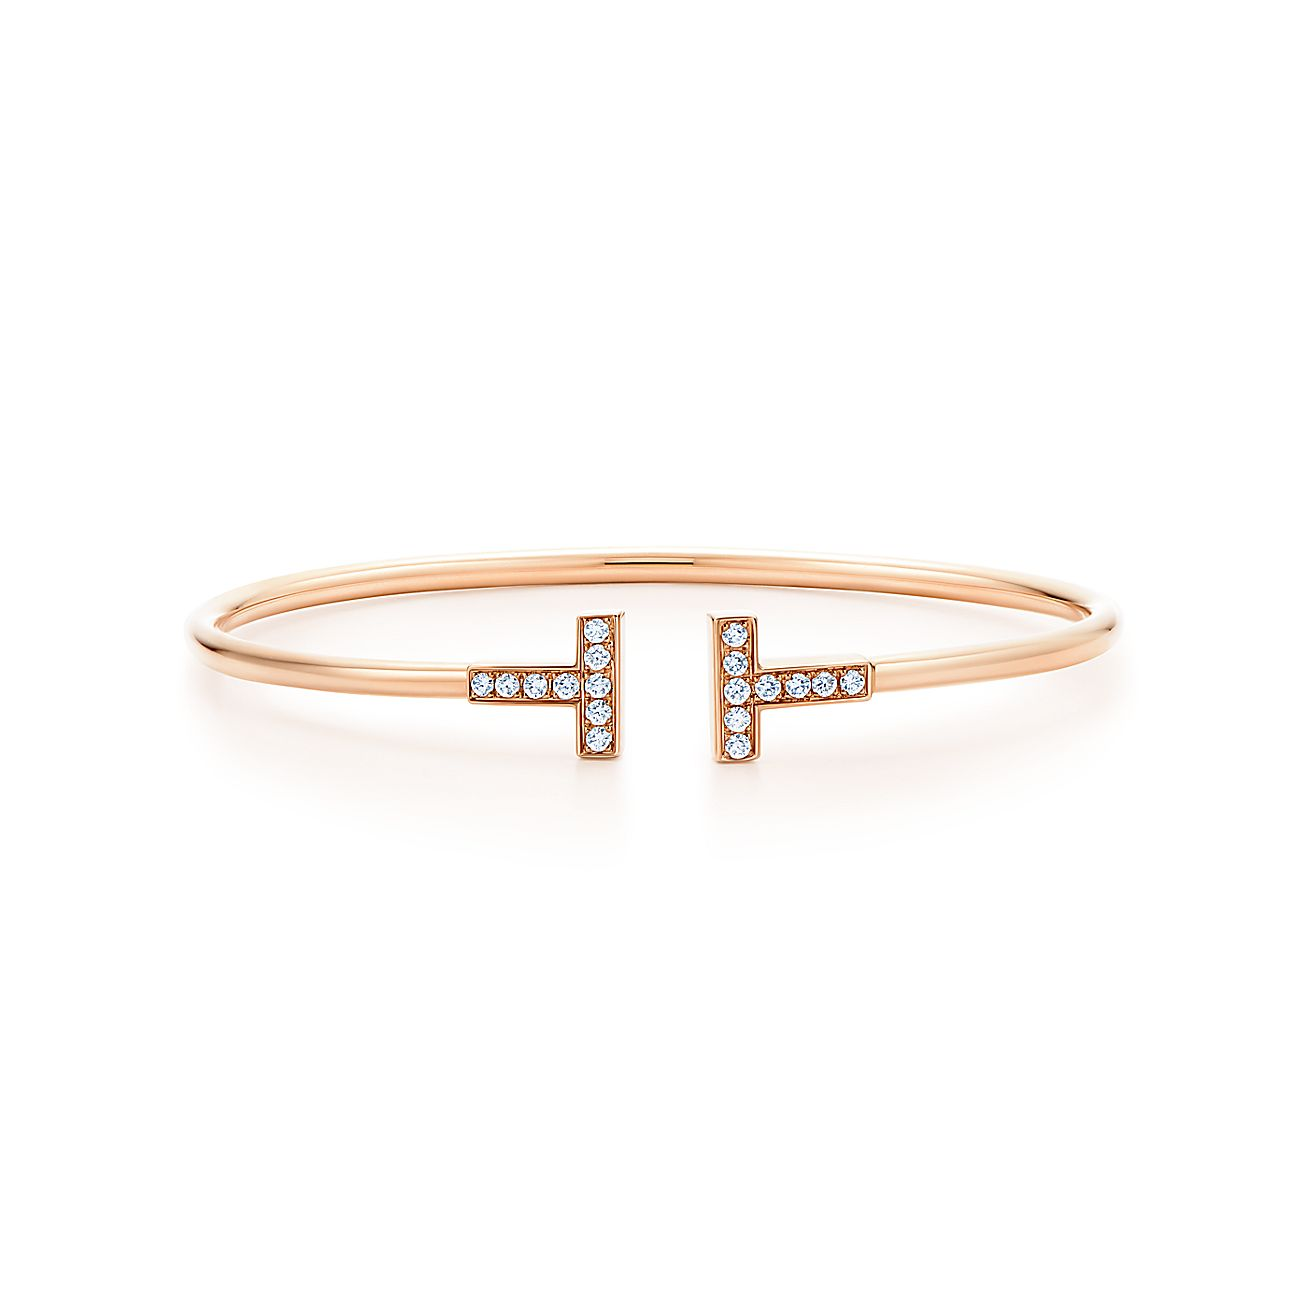 tiffany t wire bracelet in 18k rose gold with diamonds. Black Bedroom Furniture Sets. Home Design Ideas